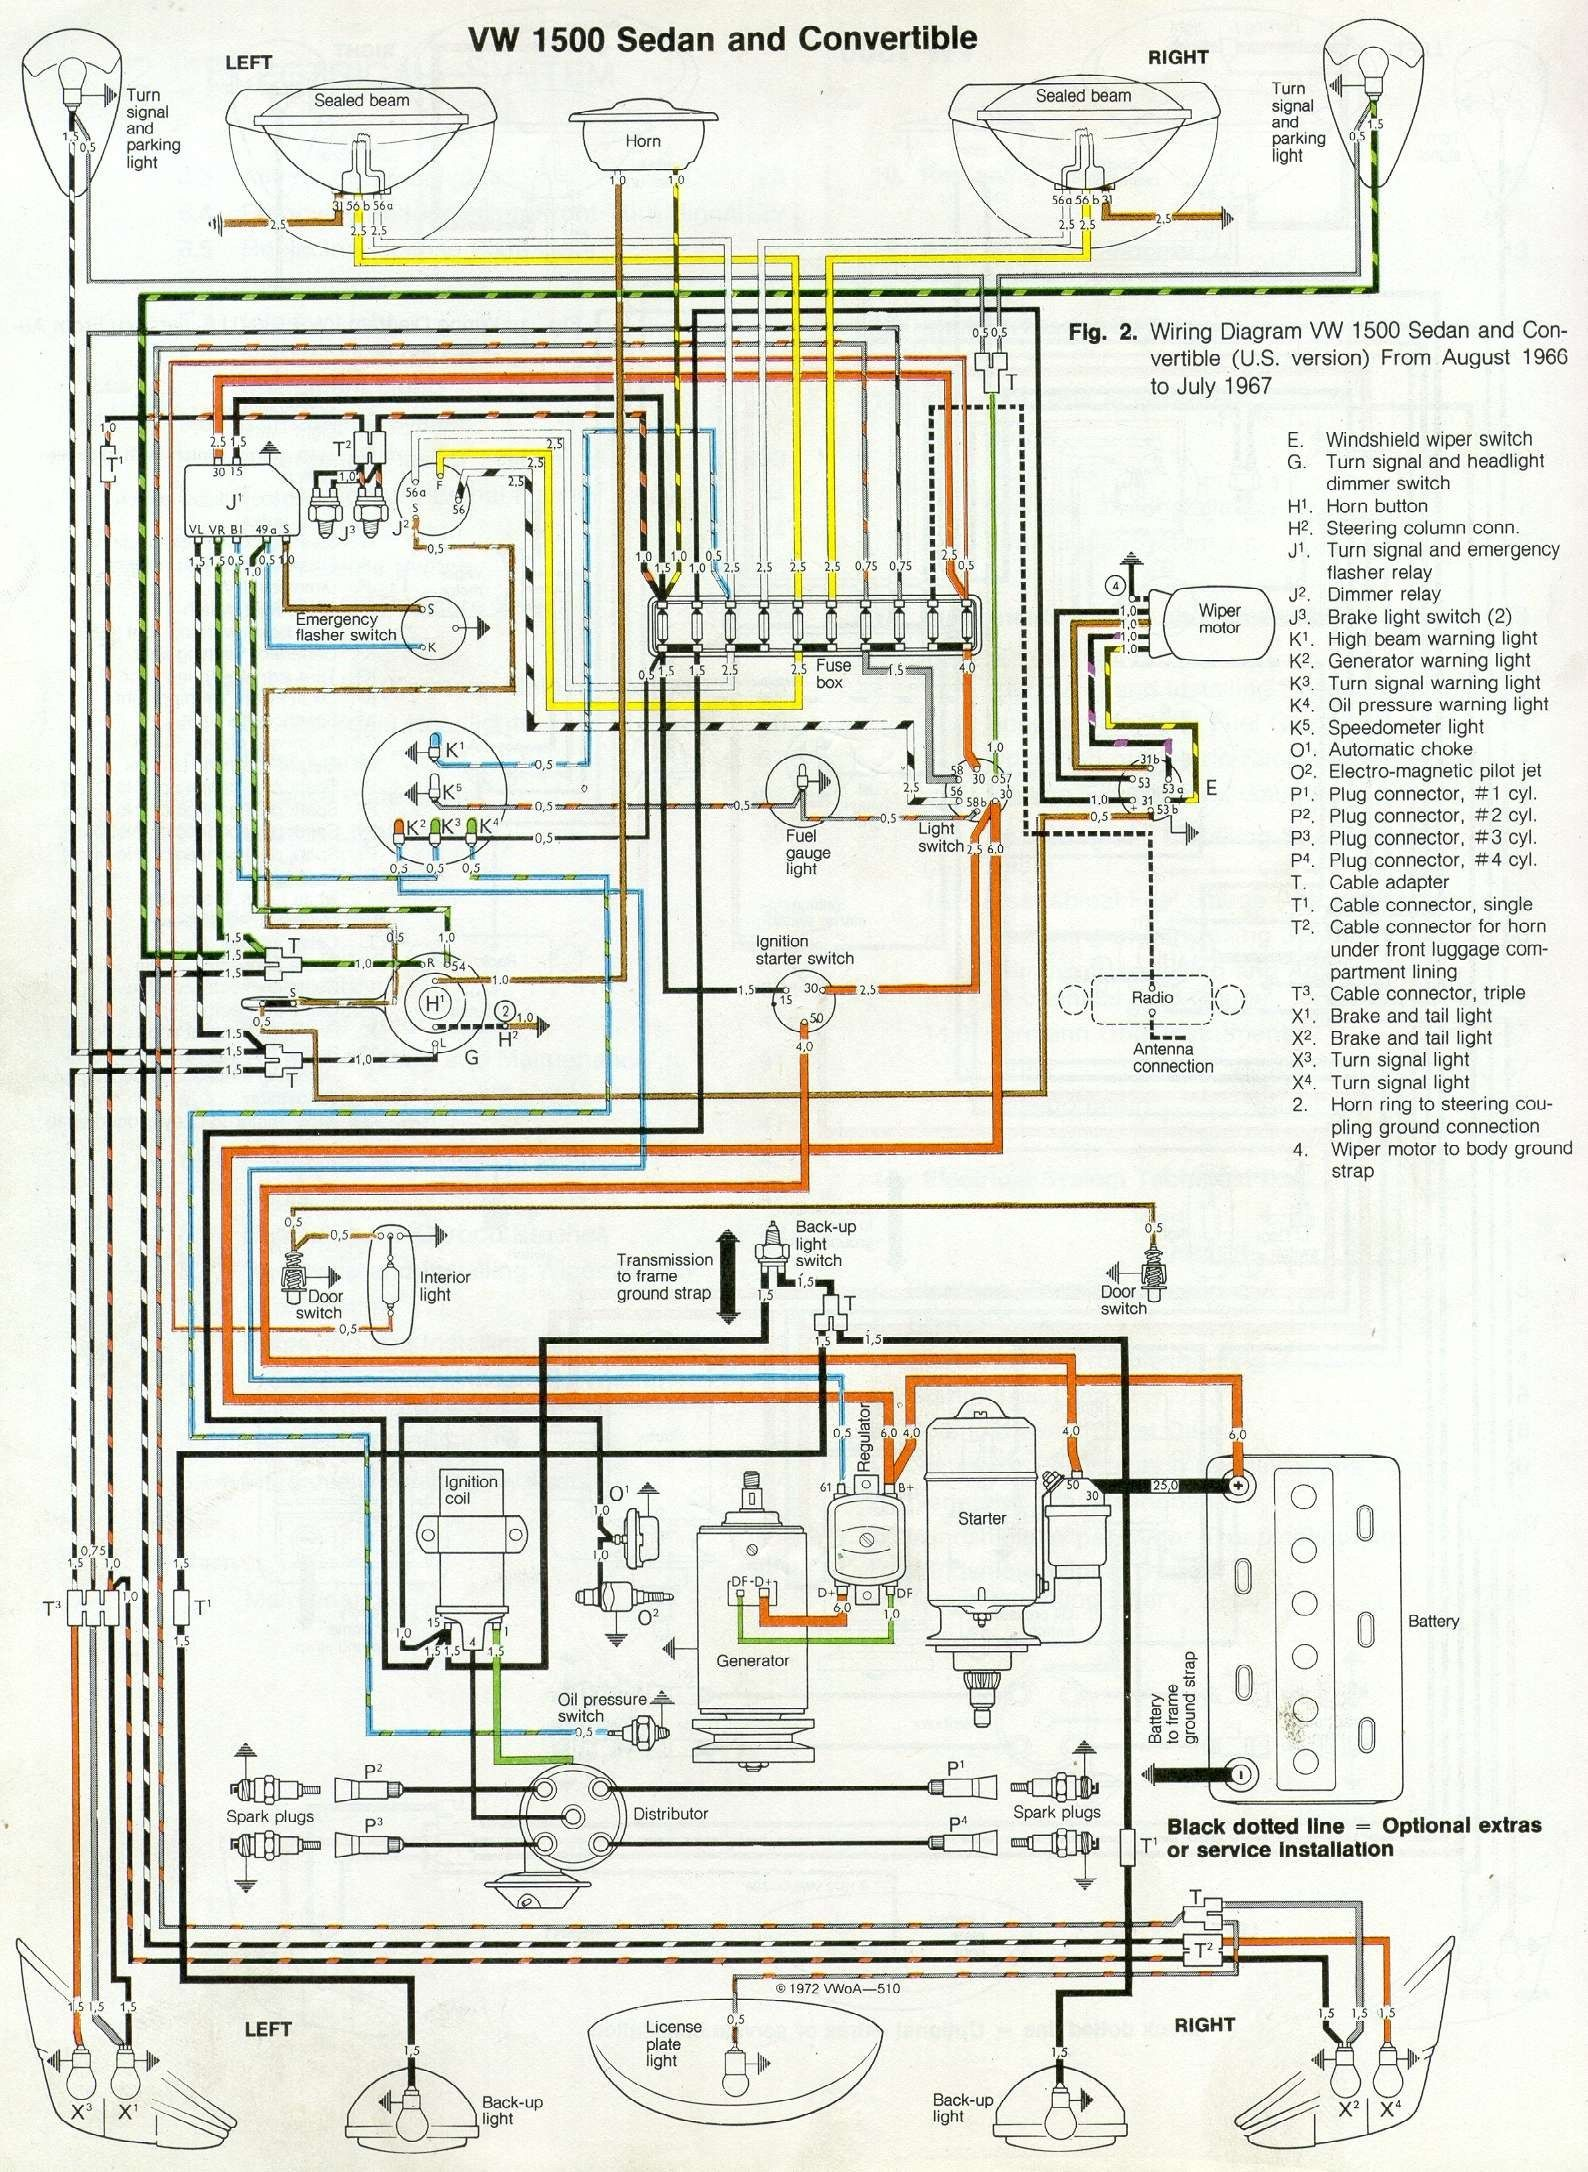 66 and '67 vw beetle wiring diagram vw beetles, beetles and vw on Porsche Turbo Heating Diagrams for i've received 4 emails in the last 2 weeks asking for the correct wiring diagram for both a and beetle illustrated below is the vw 1500 sedan and at Porsche 911 Wiring-Diagram